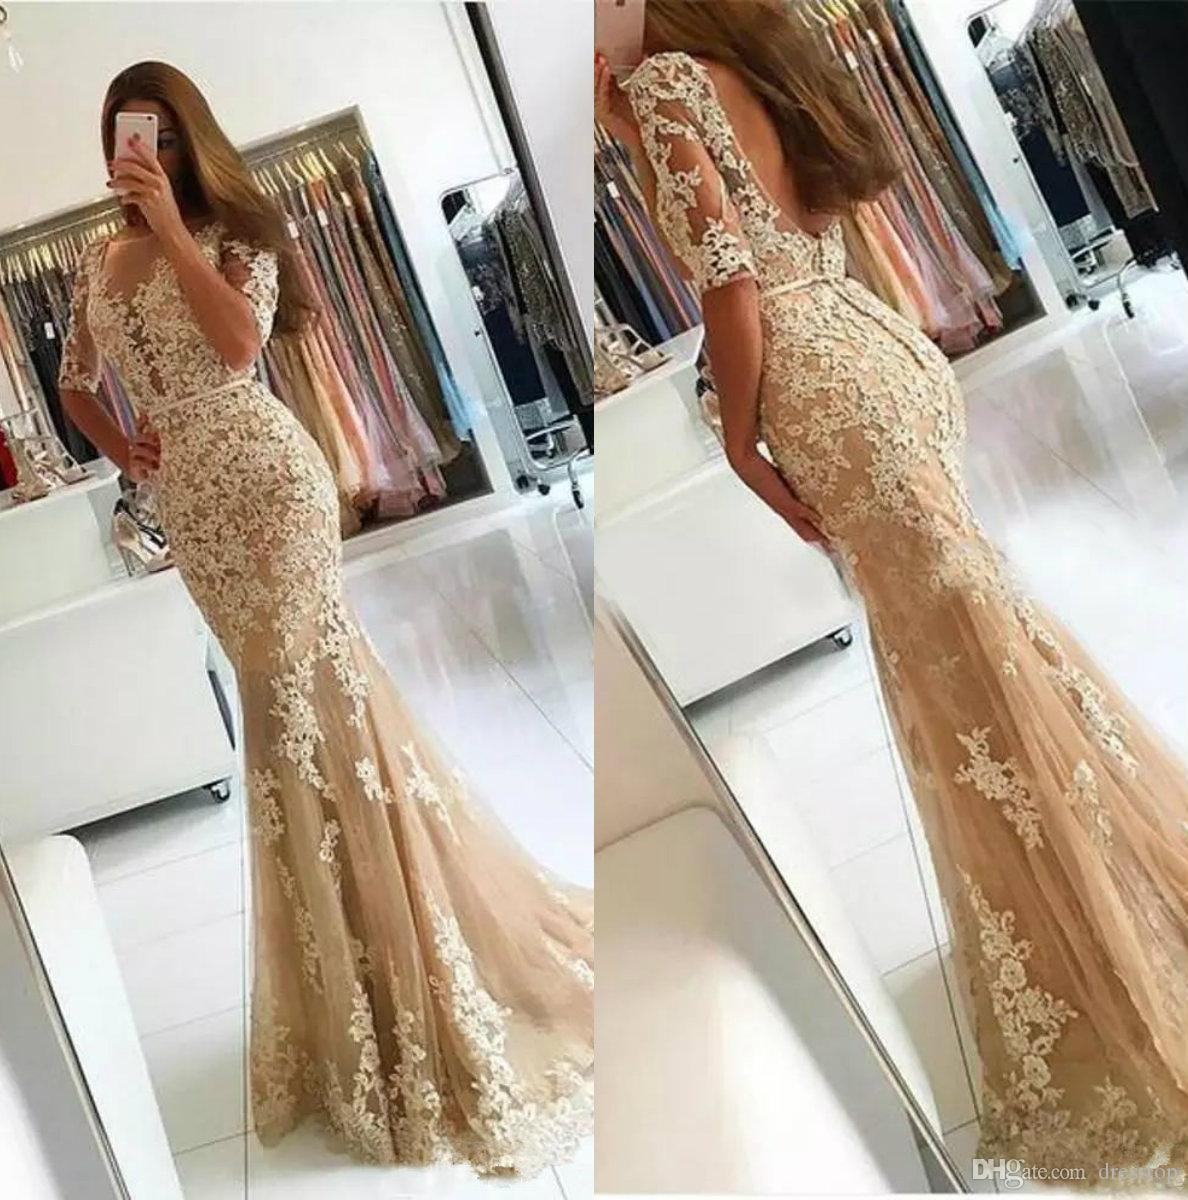 f17643eab8d Champagne Lace Mermaid Evening Dresses 2017 Applique Sexy Backless Long Prom  Dresses With Sleeves Women Party Gowns Formal Engagement Dress Black And  White ...